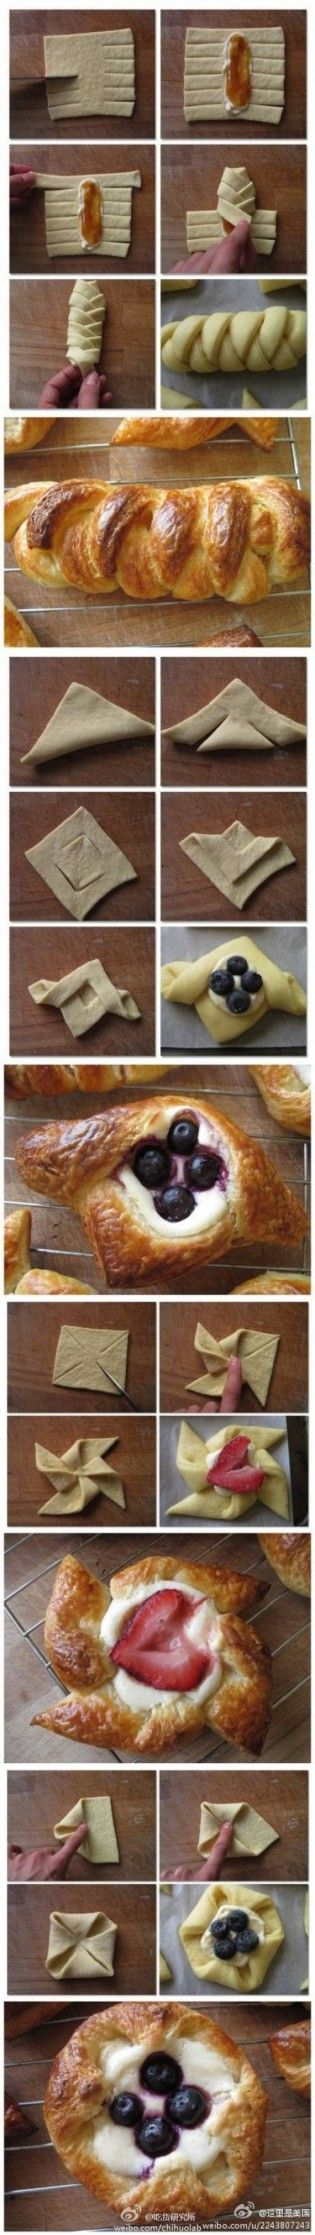 Creative Food Hacks That Will Change The Way You Cook 9